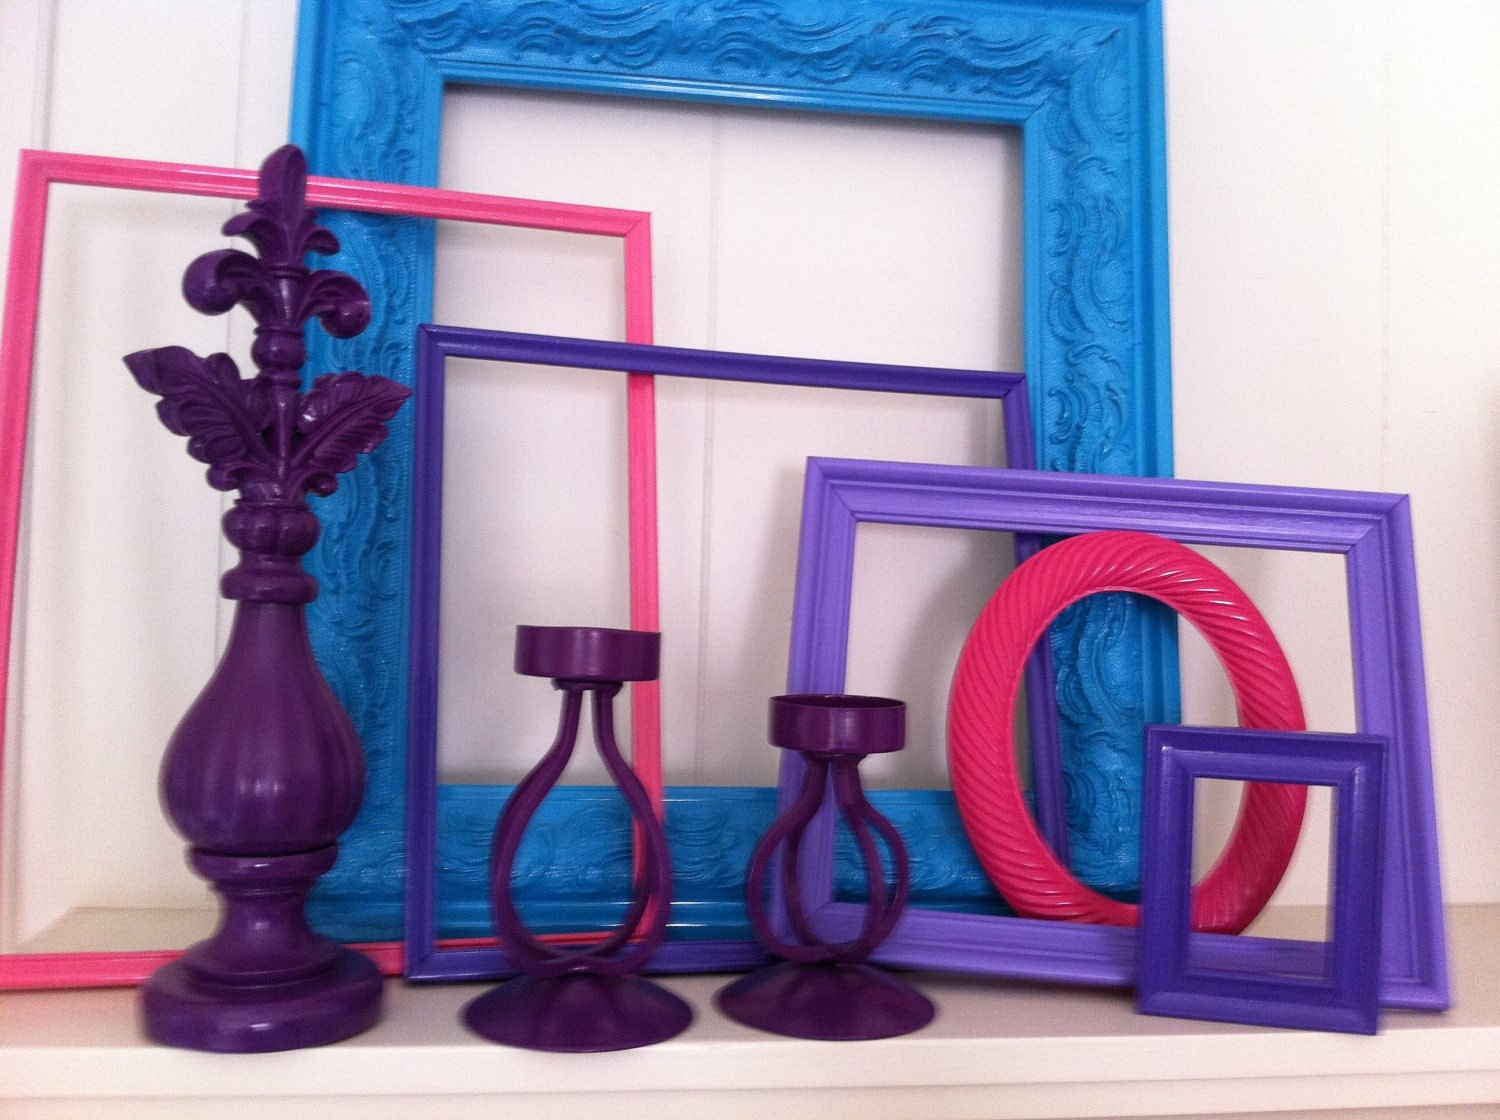 Vintage Upcycled Painted Frames and Candleholders Home Decor